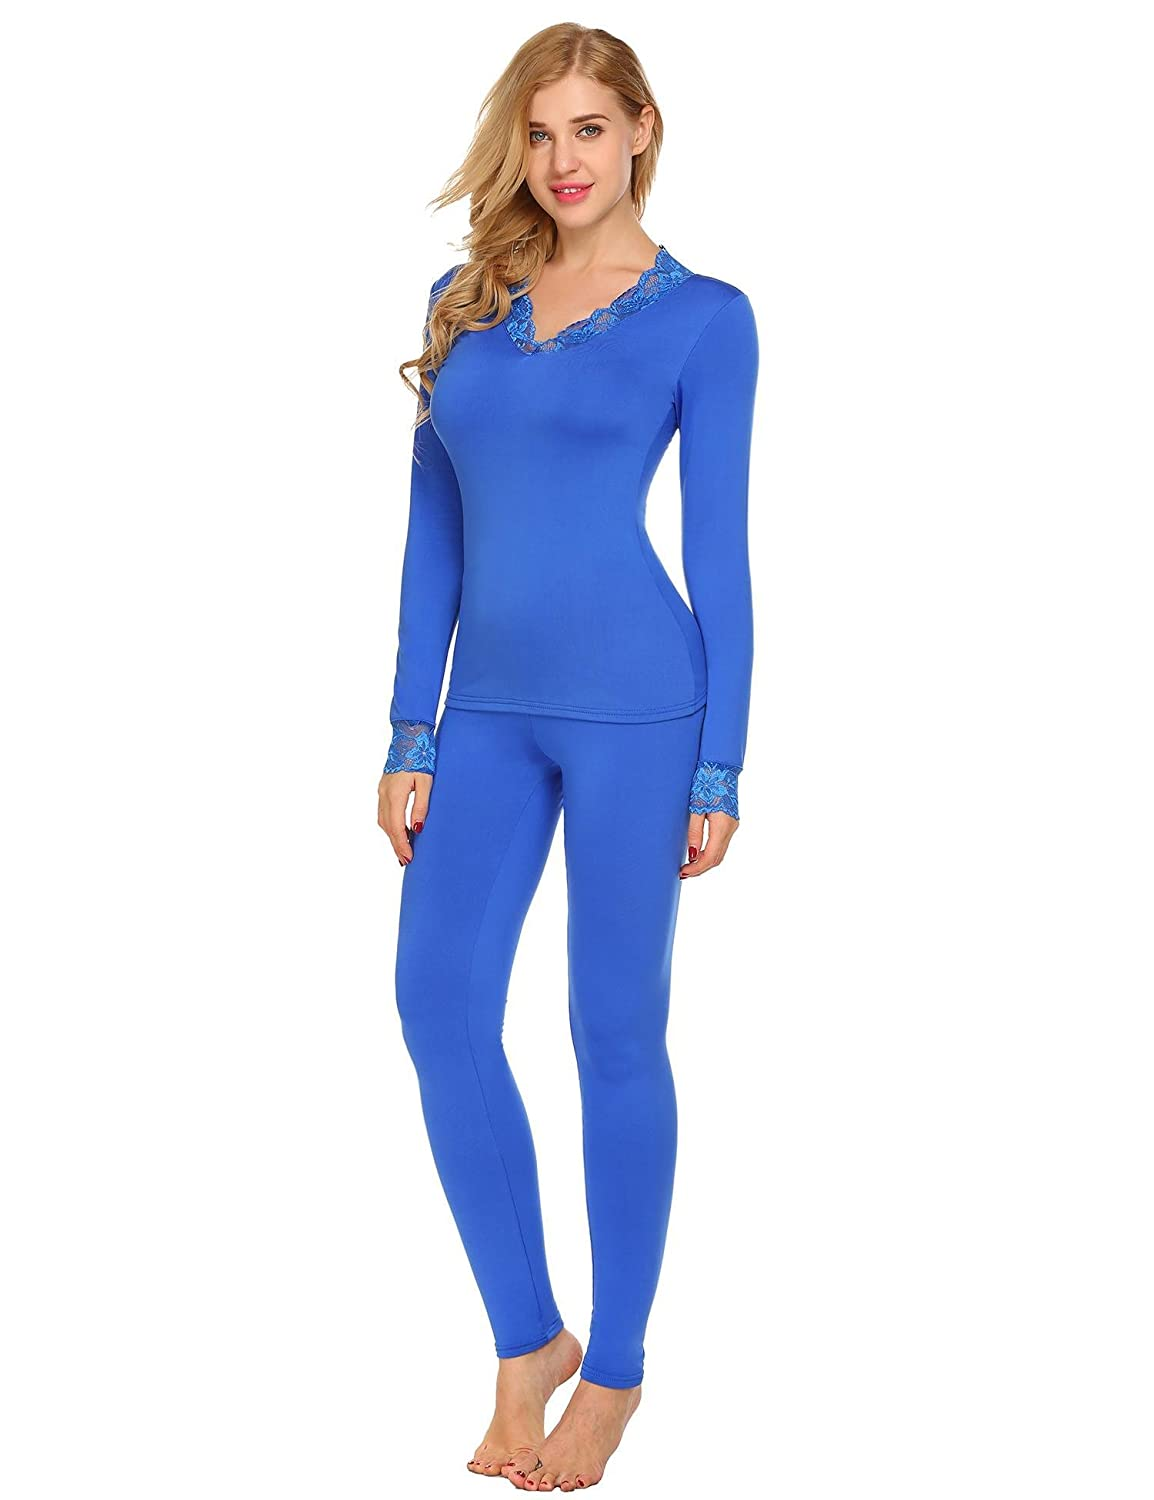 Goldenfox Women Thermal Underwear Sets Long-Sleeve Lace Patchwork Top with Pants S-XXL